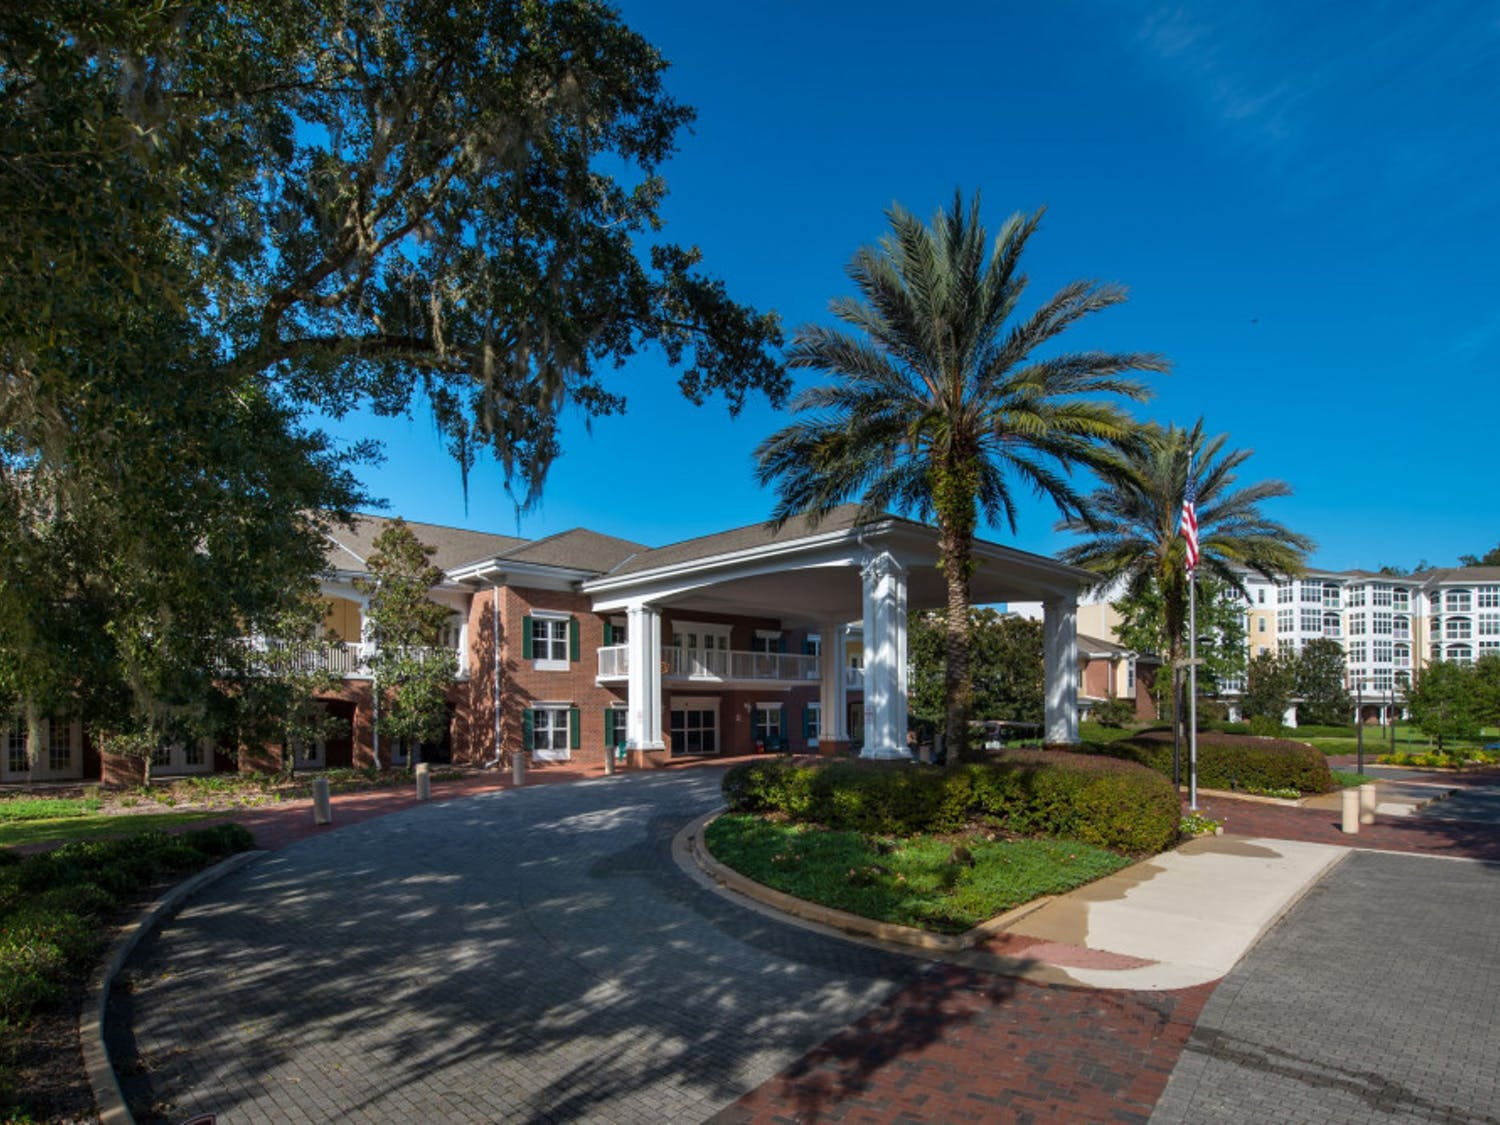 Oak Hammock at the University of Florida, a retirement community located at 5100 SW 25th Blvd., confirmed six residents and six staff as positive COVID-19 cases.